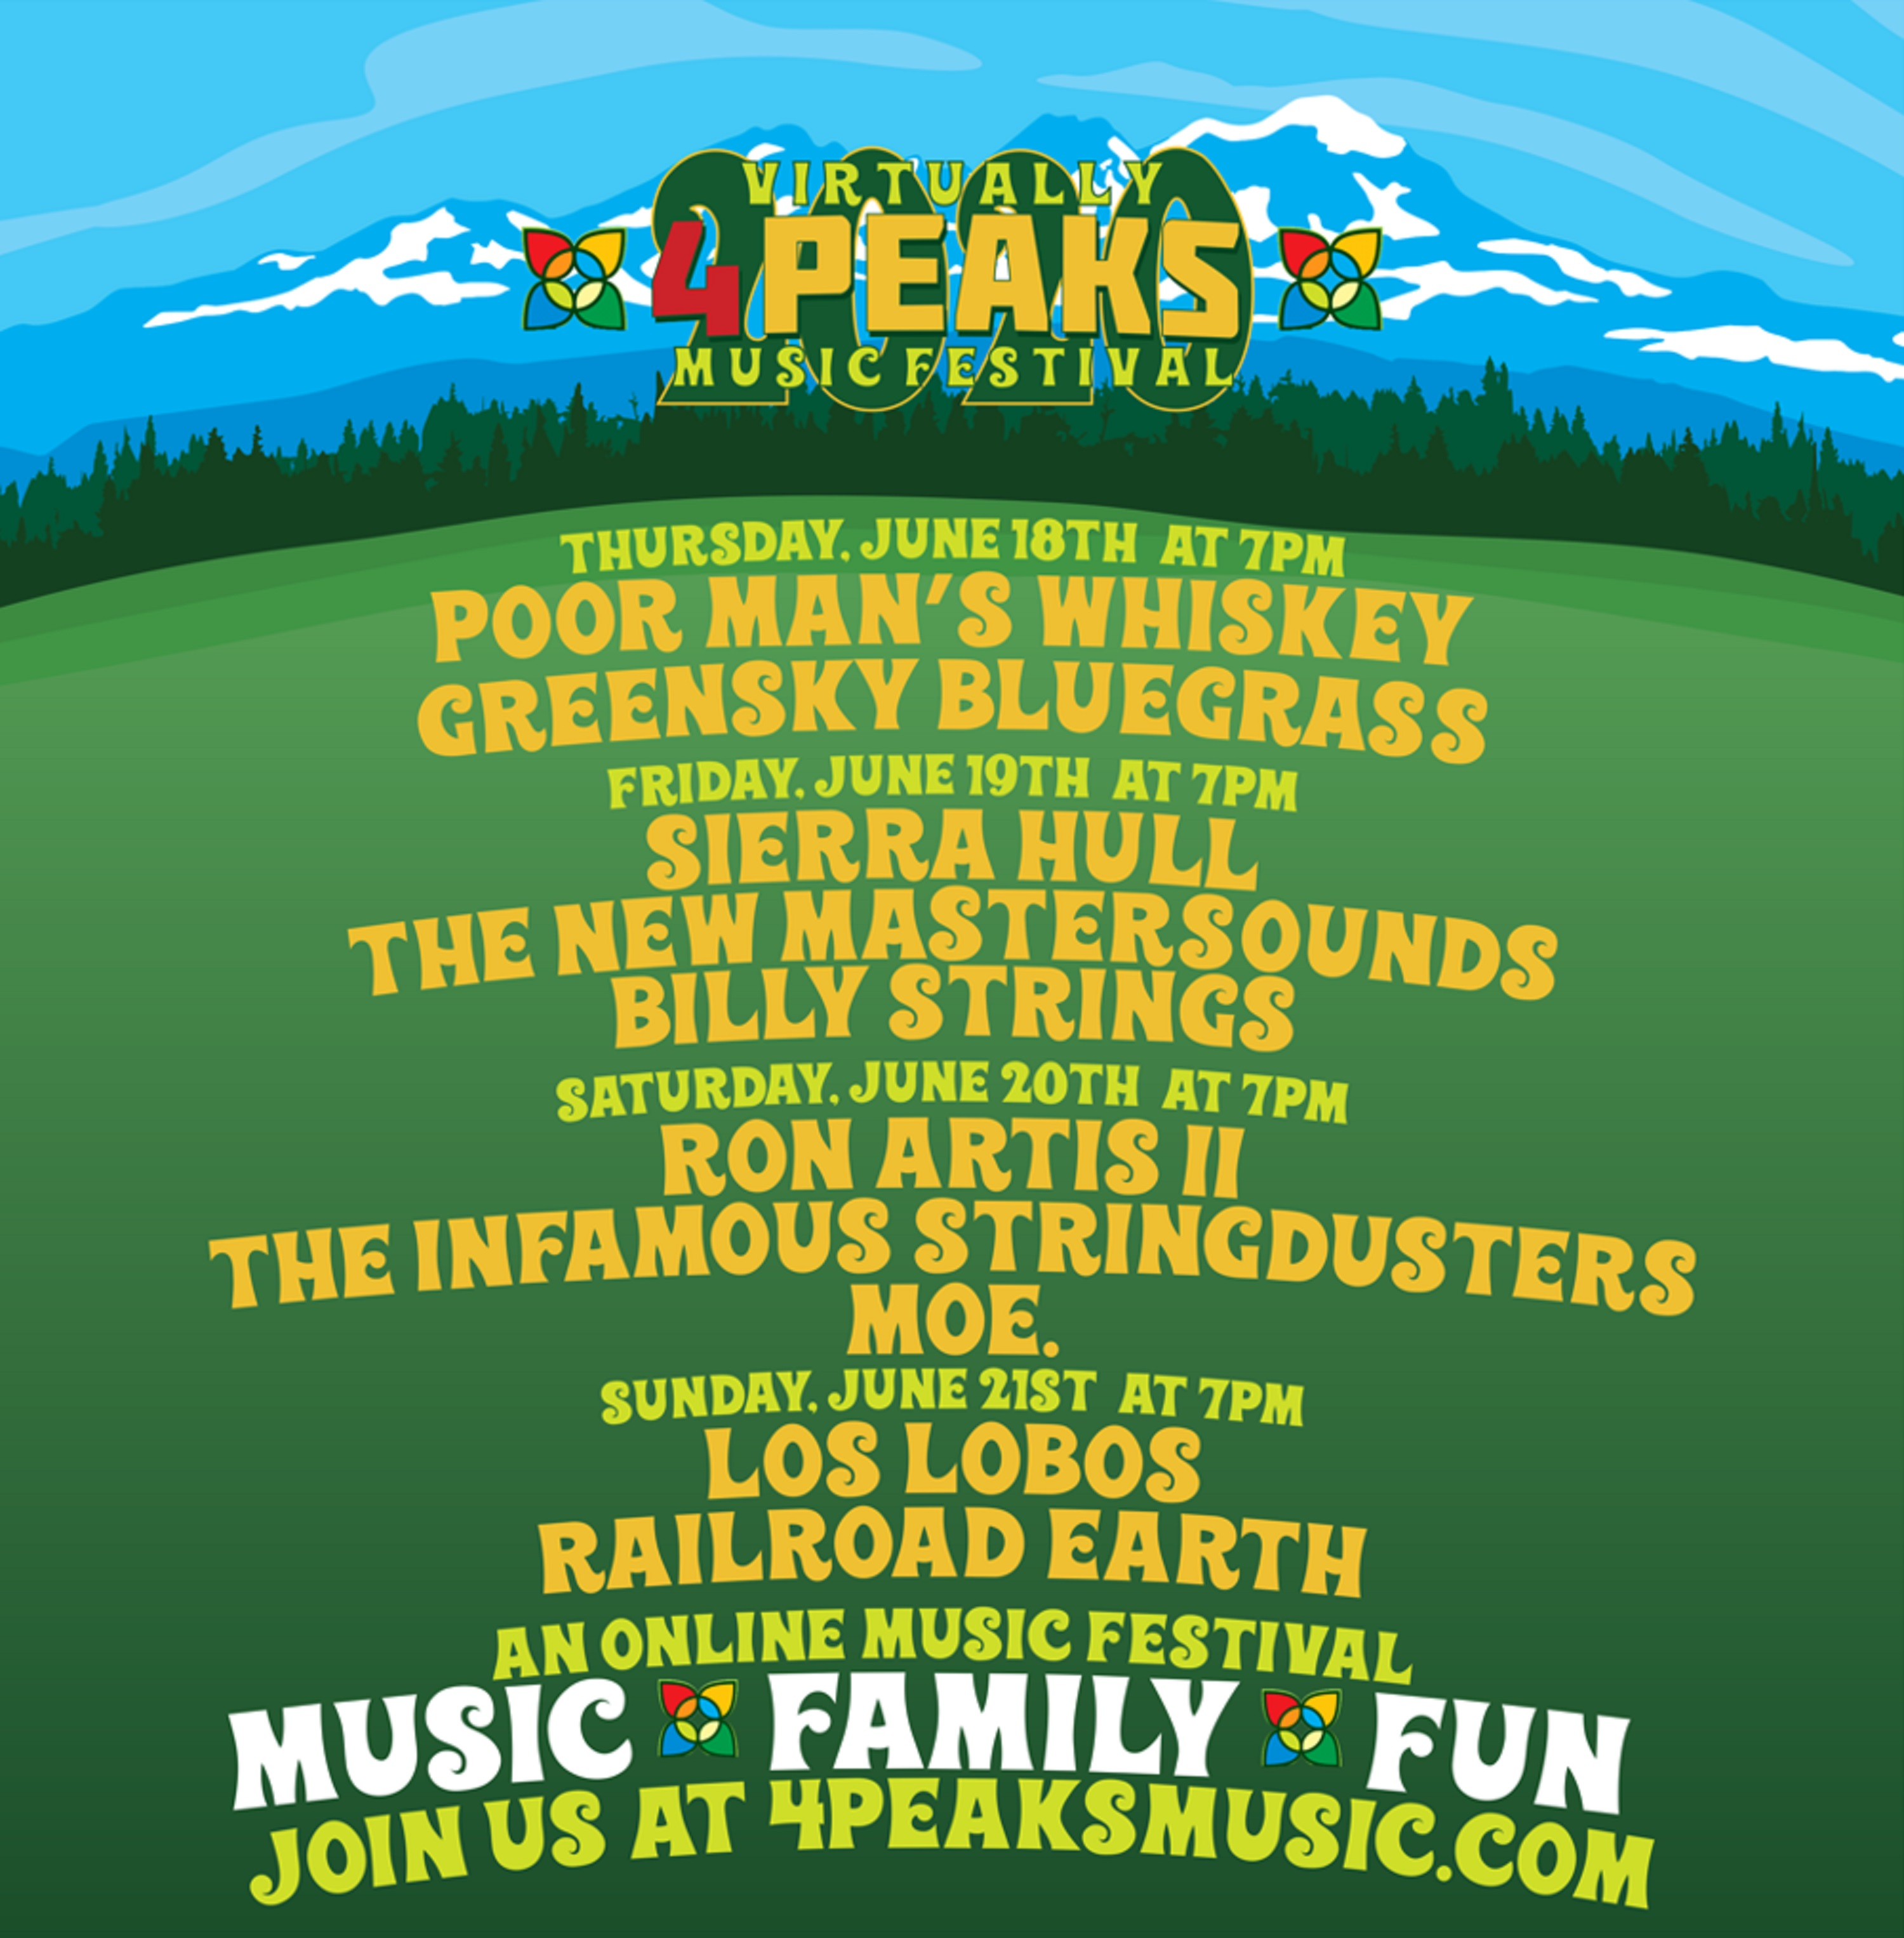 "4 Peaks Presents to Host the ""Virtually 4 Peaks"" Music Festival"